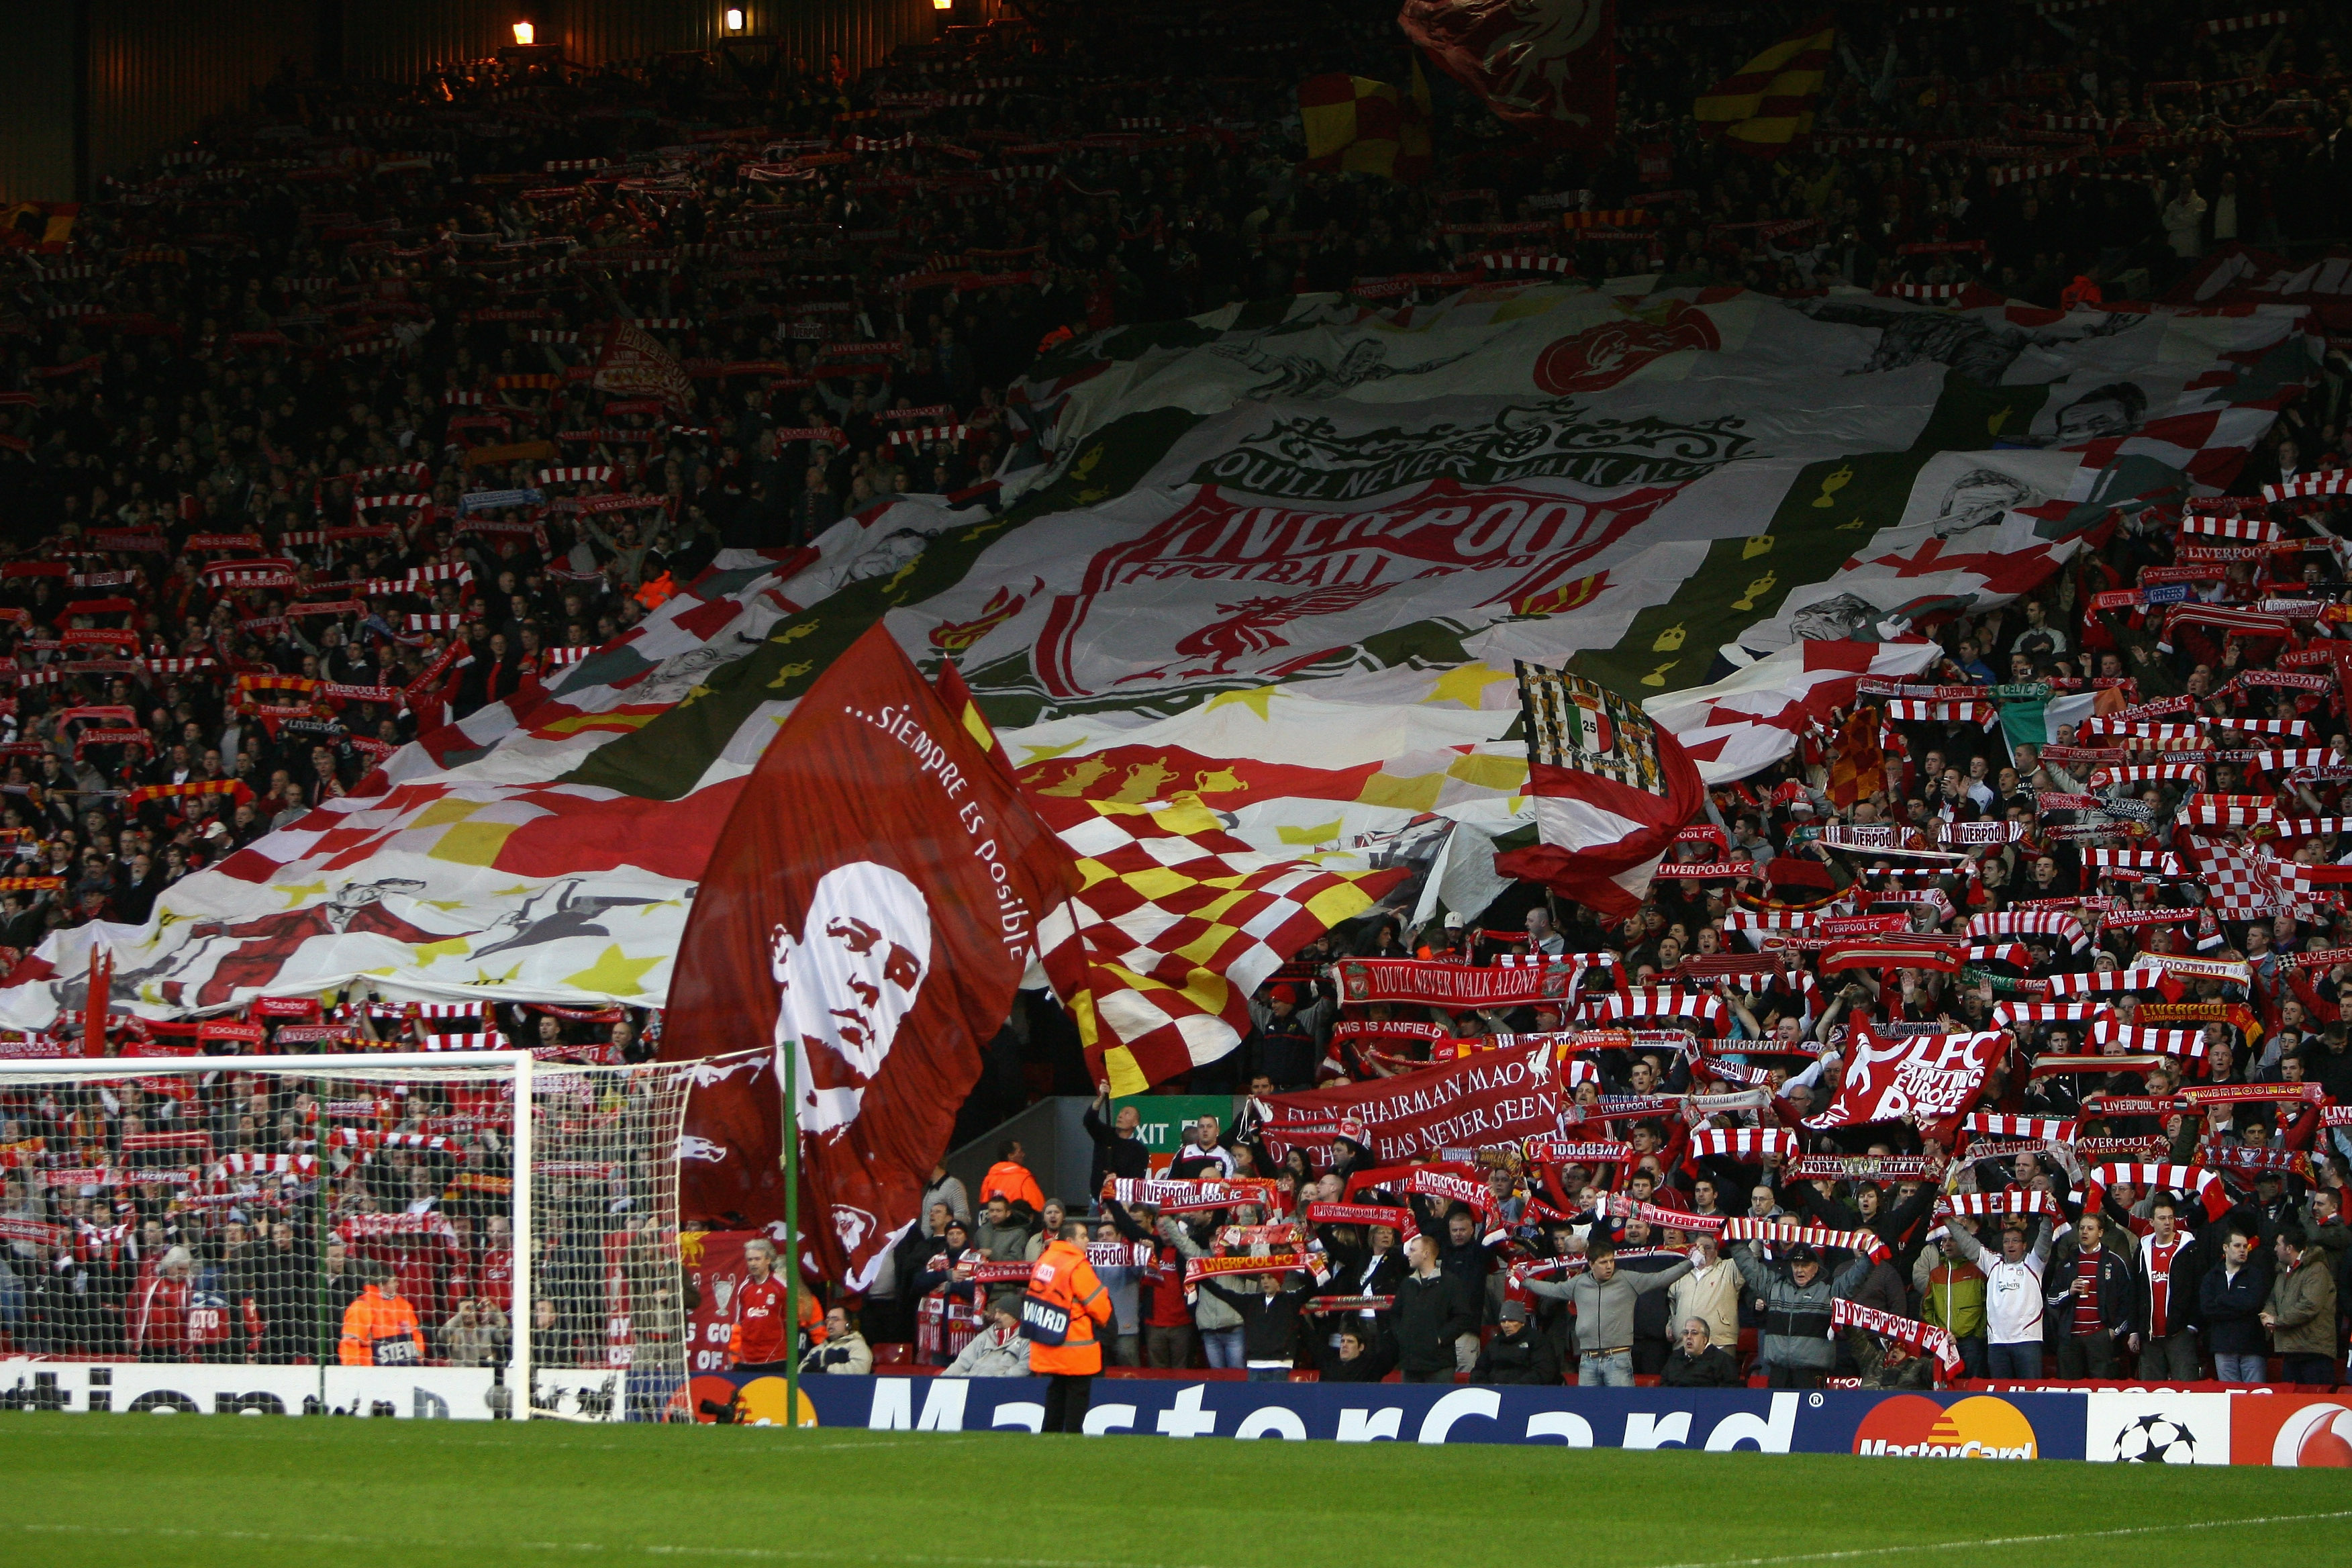 LIVERPOOL, UNITED KINGDOM - APRIL 08: Supporters on the Kop show off their flags and scarves prior to the UEFA Champions League Quarter Final, second leg match between Liverpool and Arsenal at Anfield on April 8, 2008 in Liverpool, England. (Photo by Clive Brunskill/Getty Images)